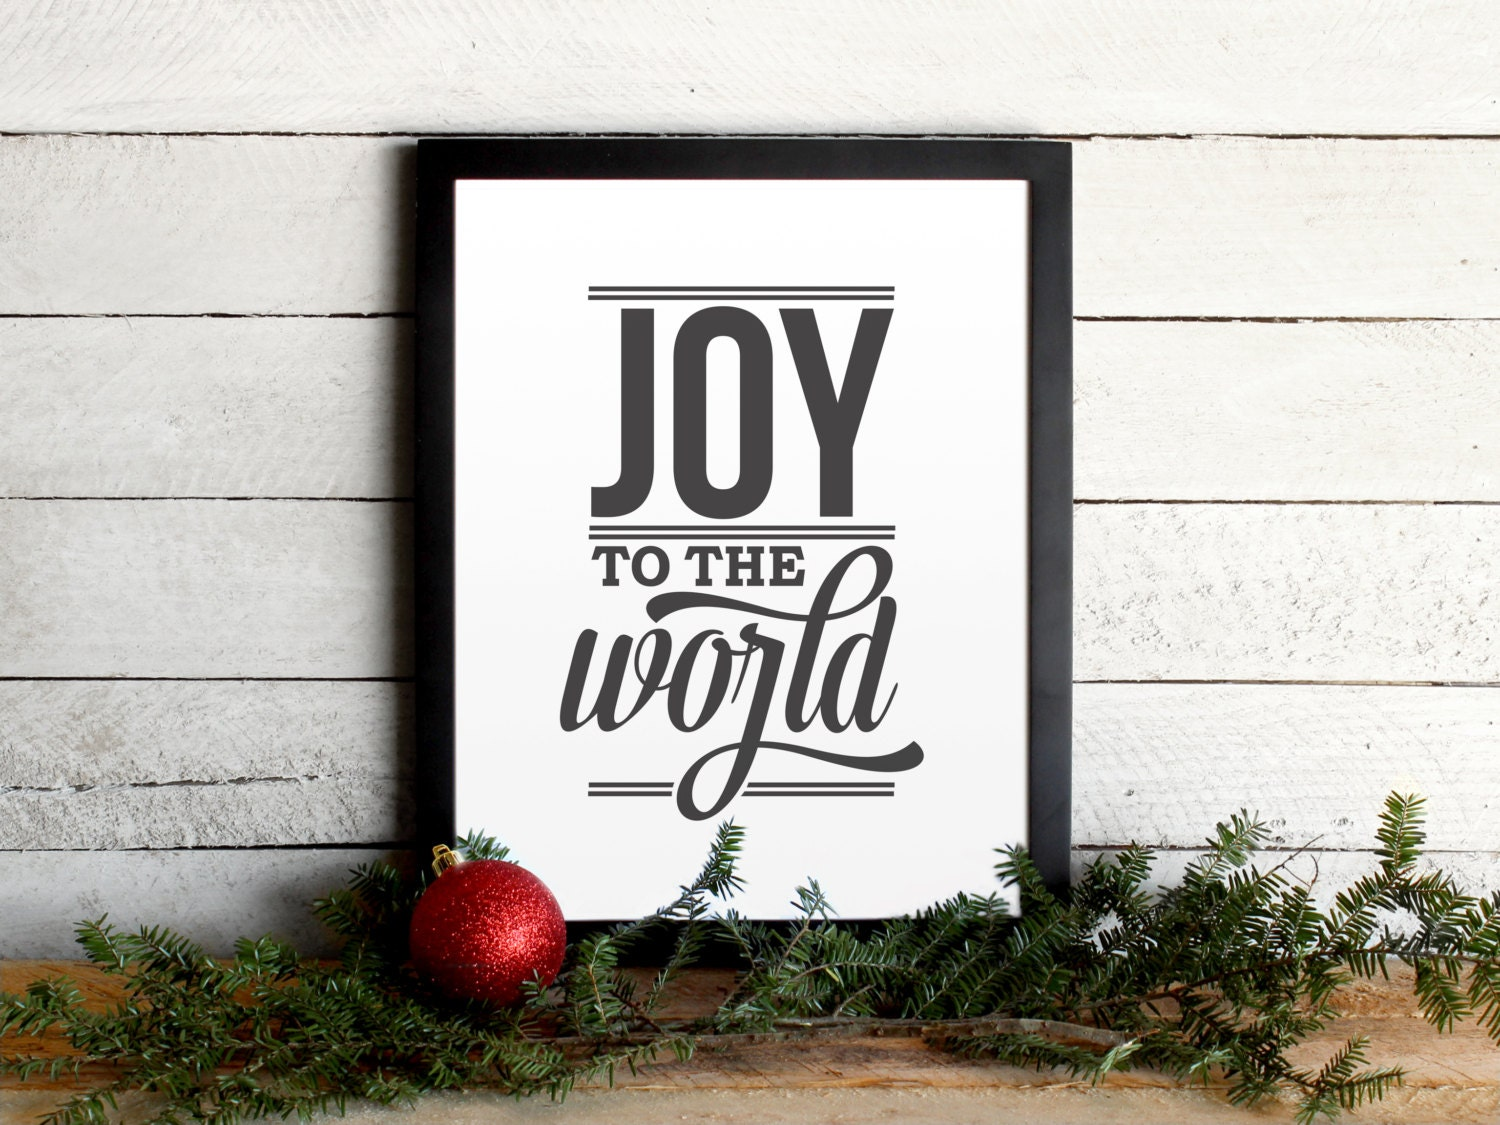 Joy To The World Lyrics Holiday Poster Vintage Modern | Etsy